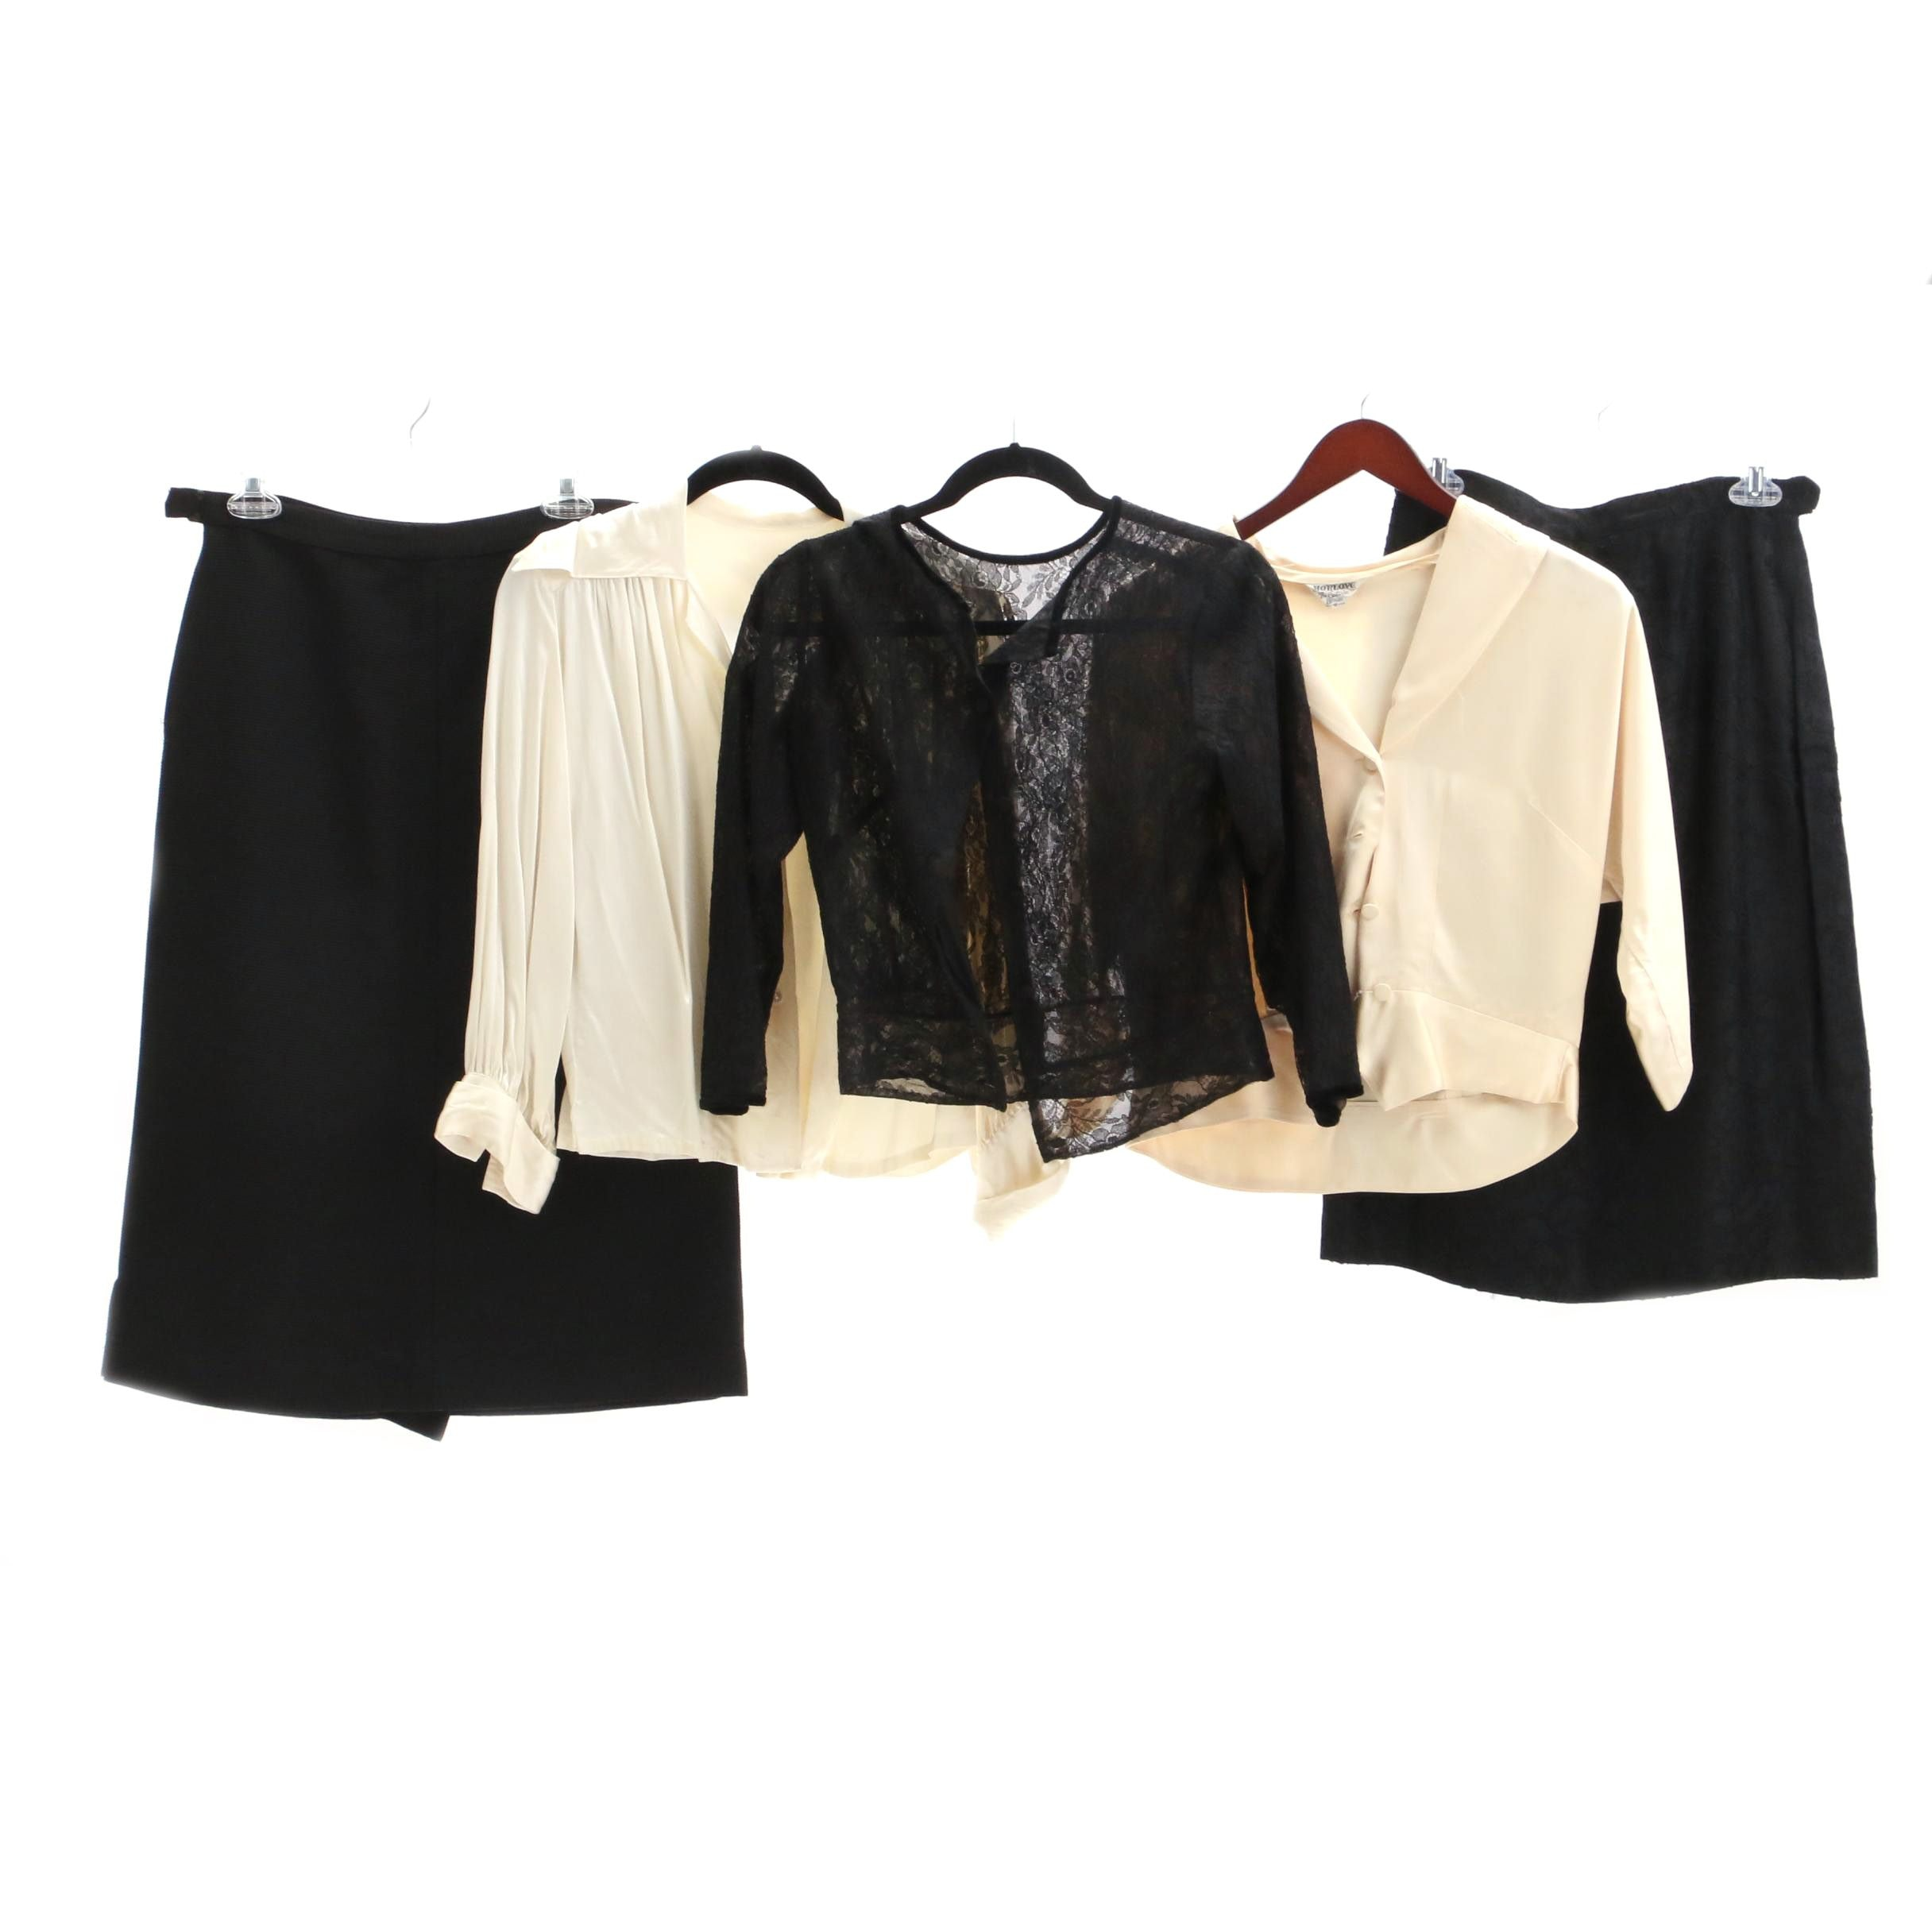 Circa 1950s Vintage Skirts and Blouses